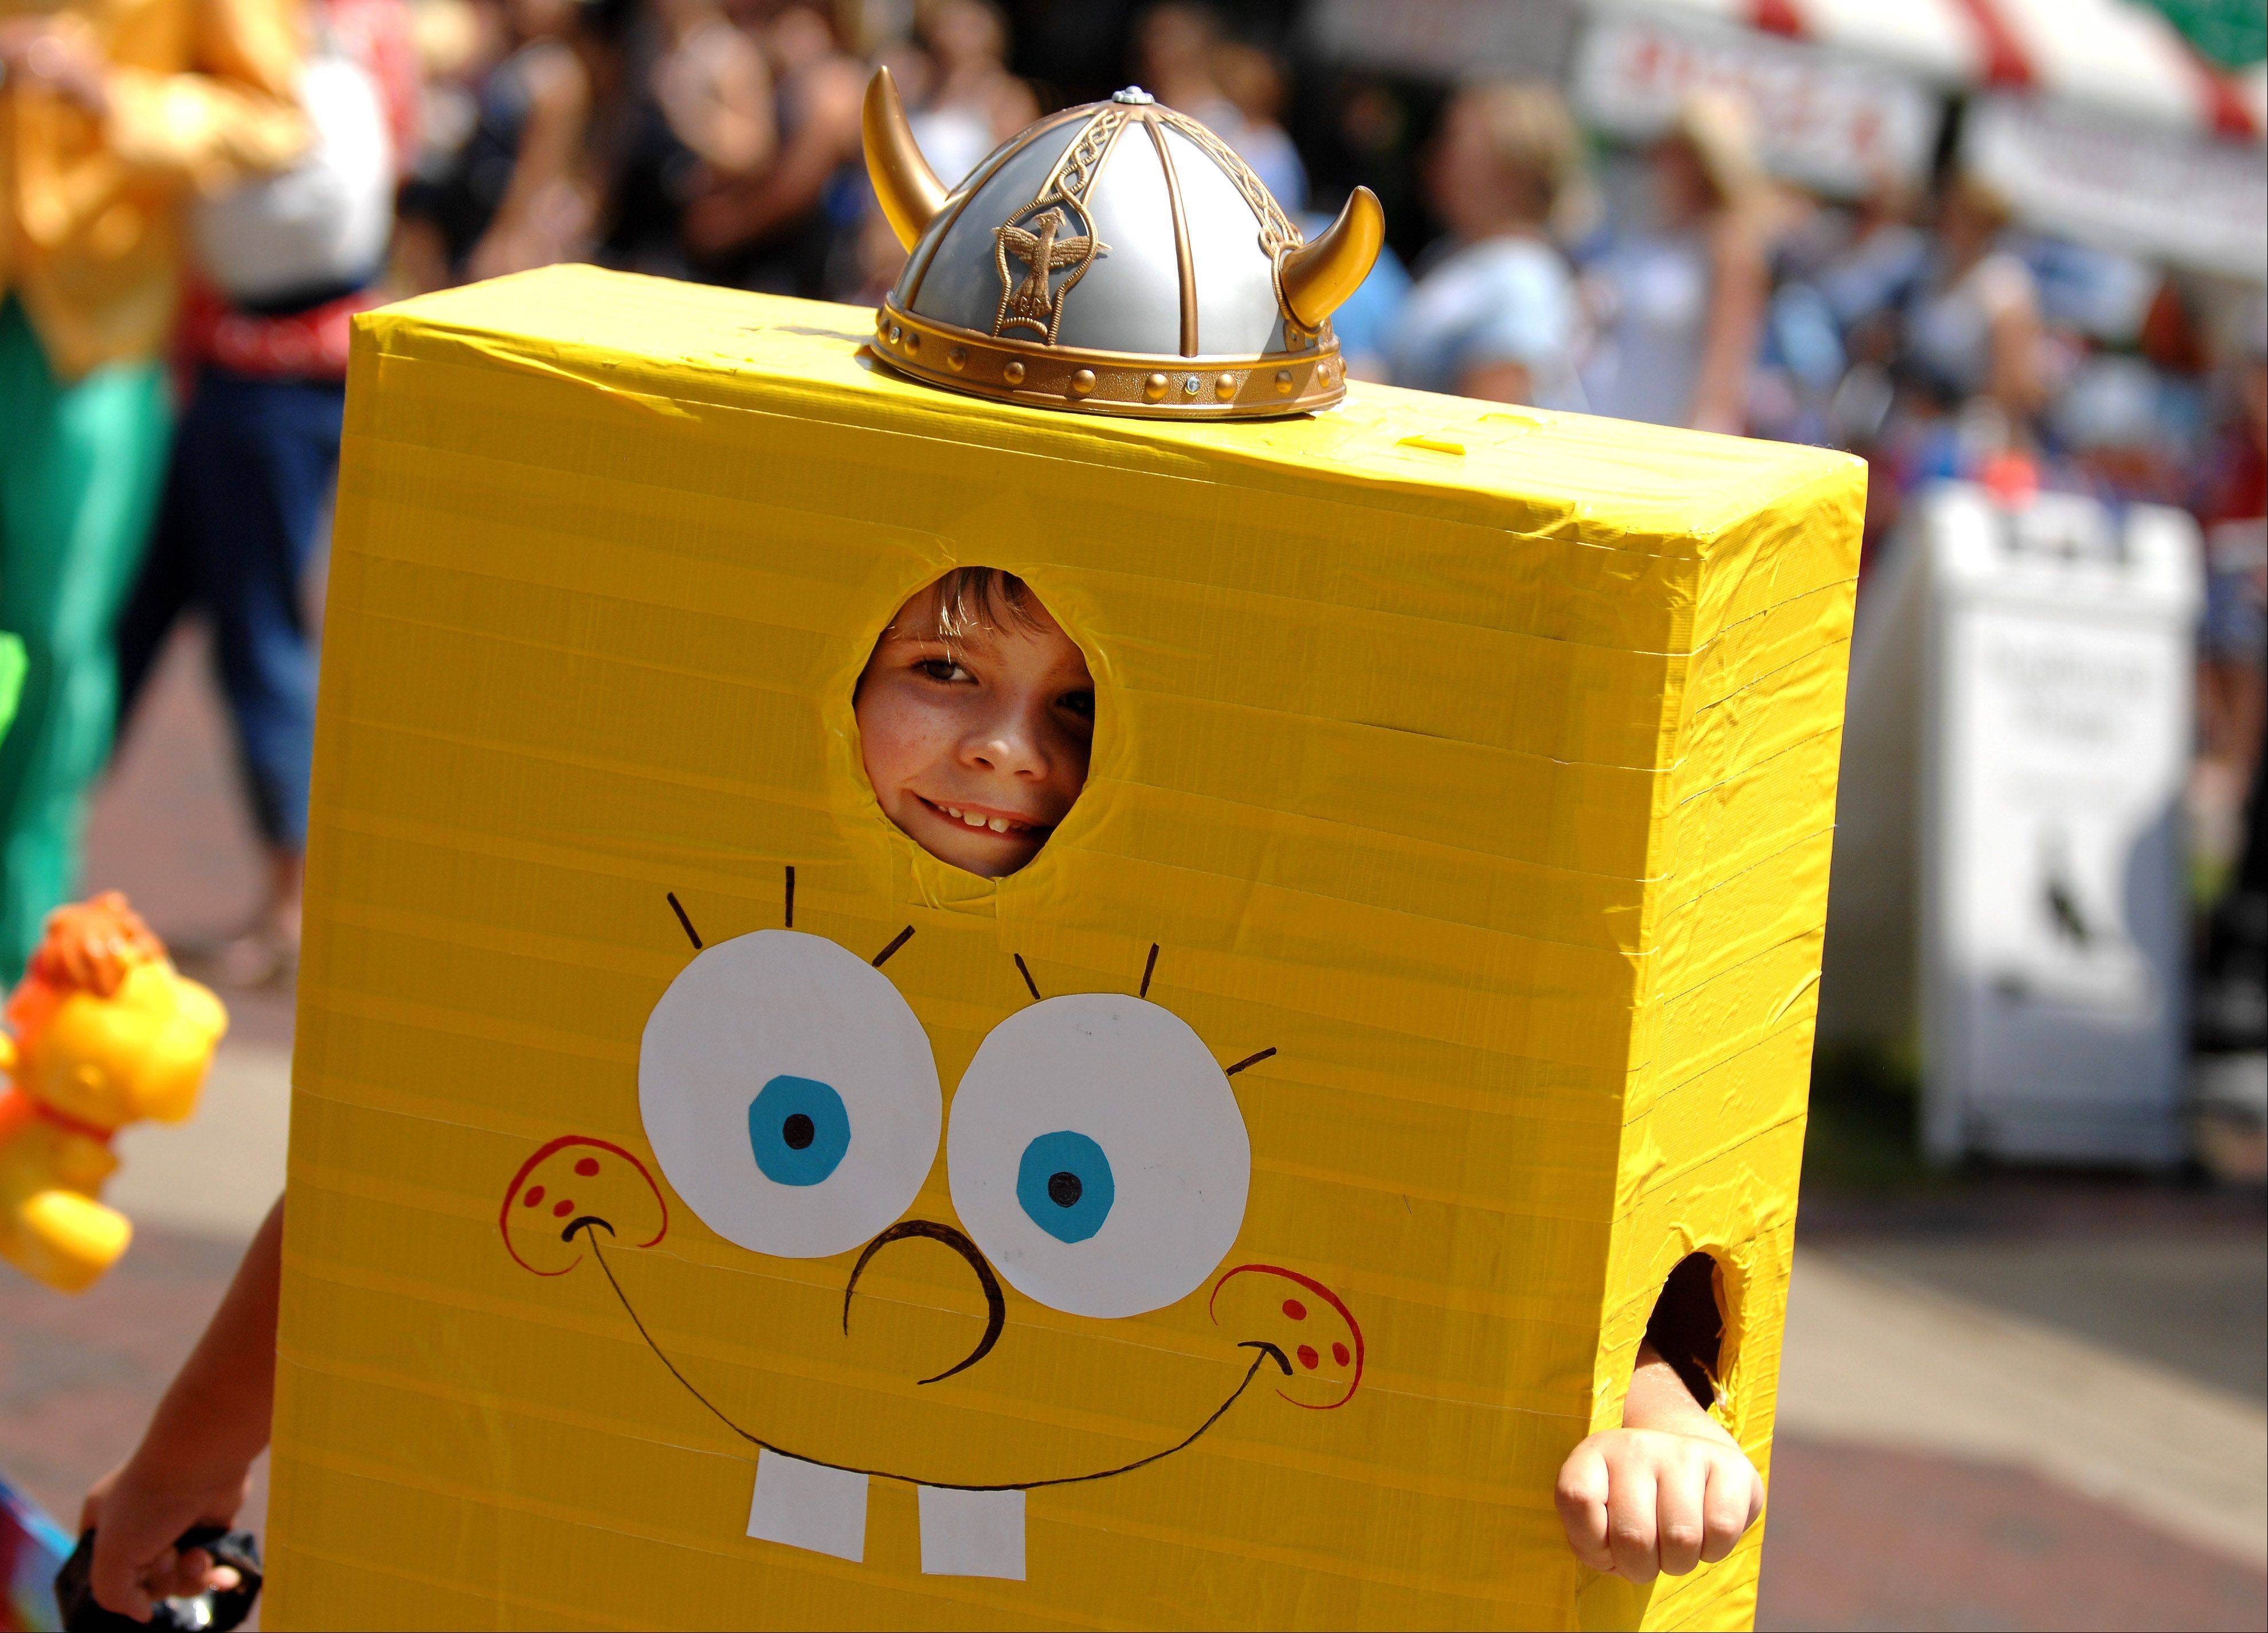 Andrew Mueller, 7, of Geneva flashes a smile from inside his SpongeBob costume during the kids parade at last year's Swedish Days in Geneva. This year's festival will run June 18-23.